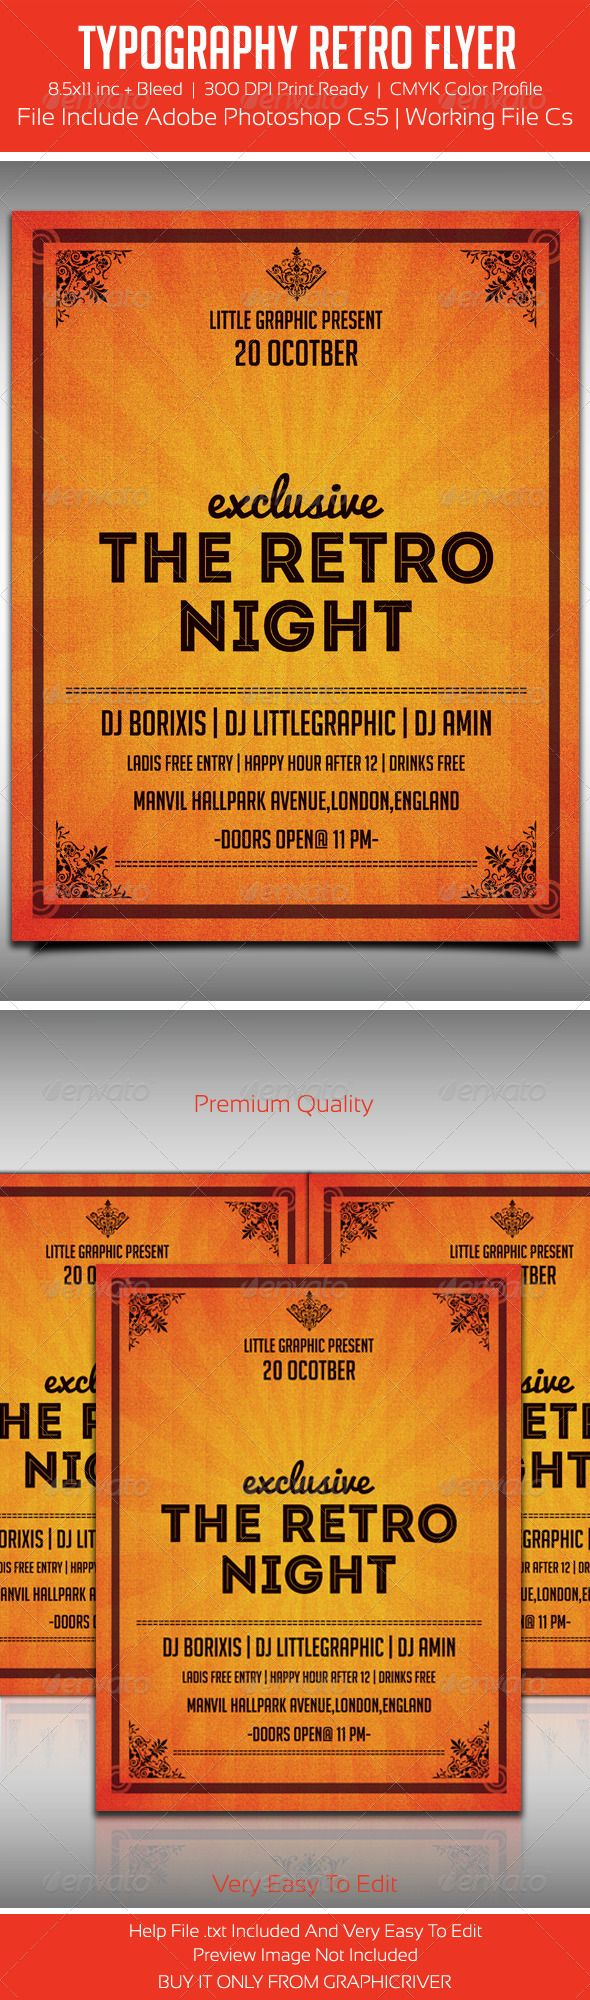 Typography Retro Party Flyer Template — Photoshop PSD #event #club party • A…